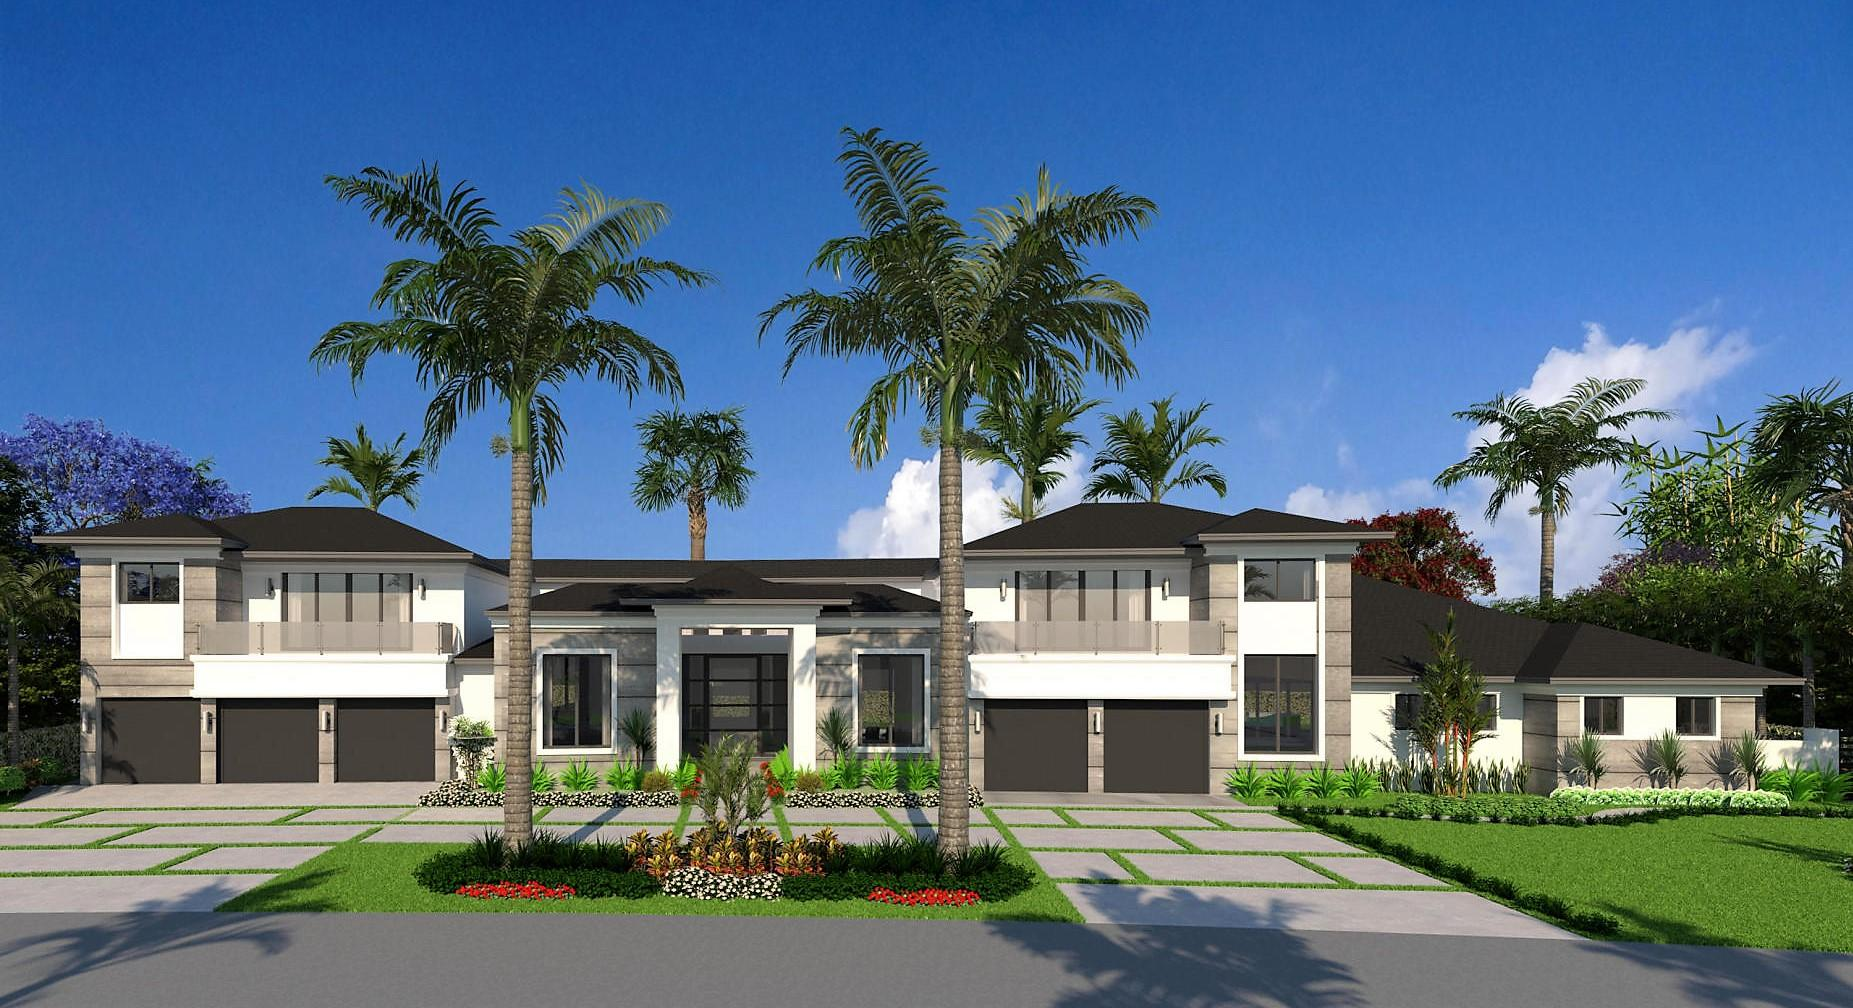 Boca Raton, Florida 33432, 6 Bedrooms Bedrooms, ,6 BathroomsBathrooms,Residential,For Sale,Thatch Palm,RX-10611590